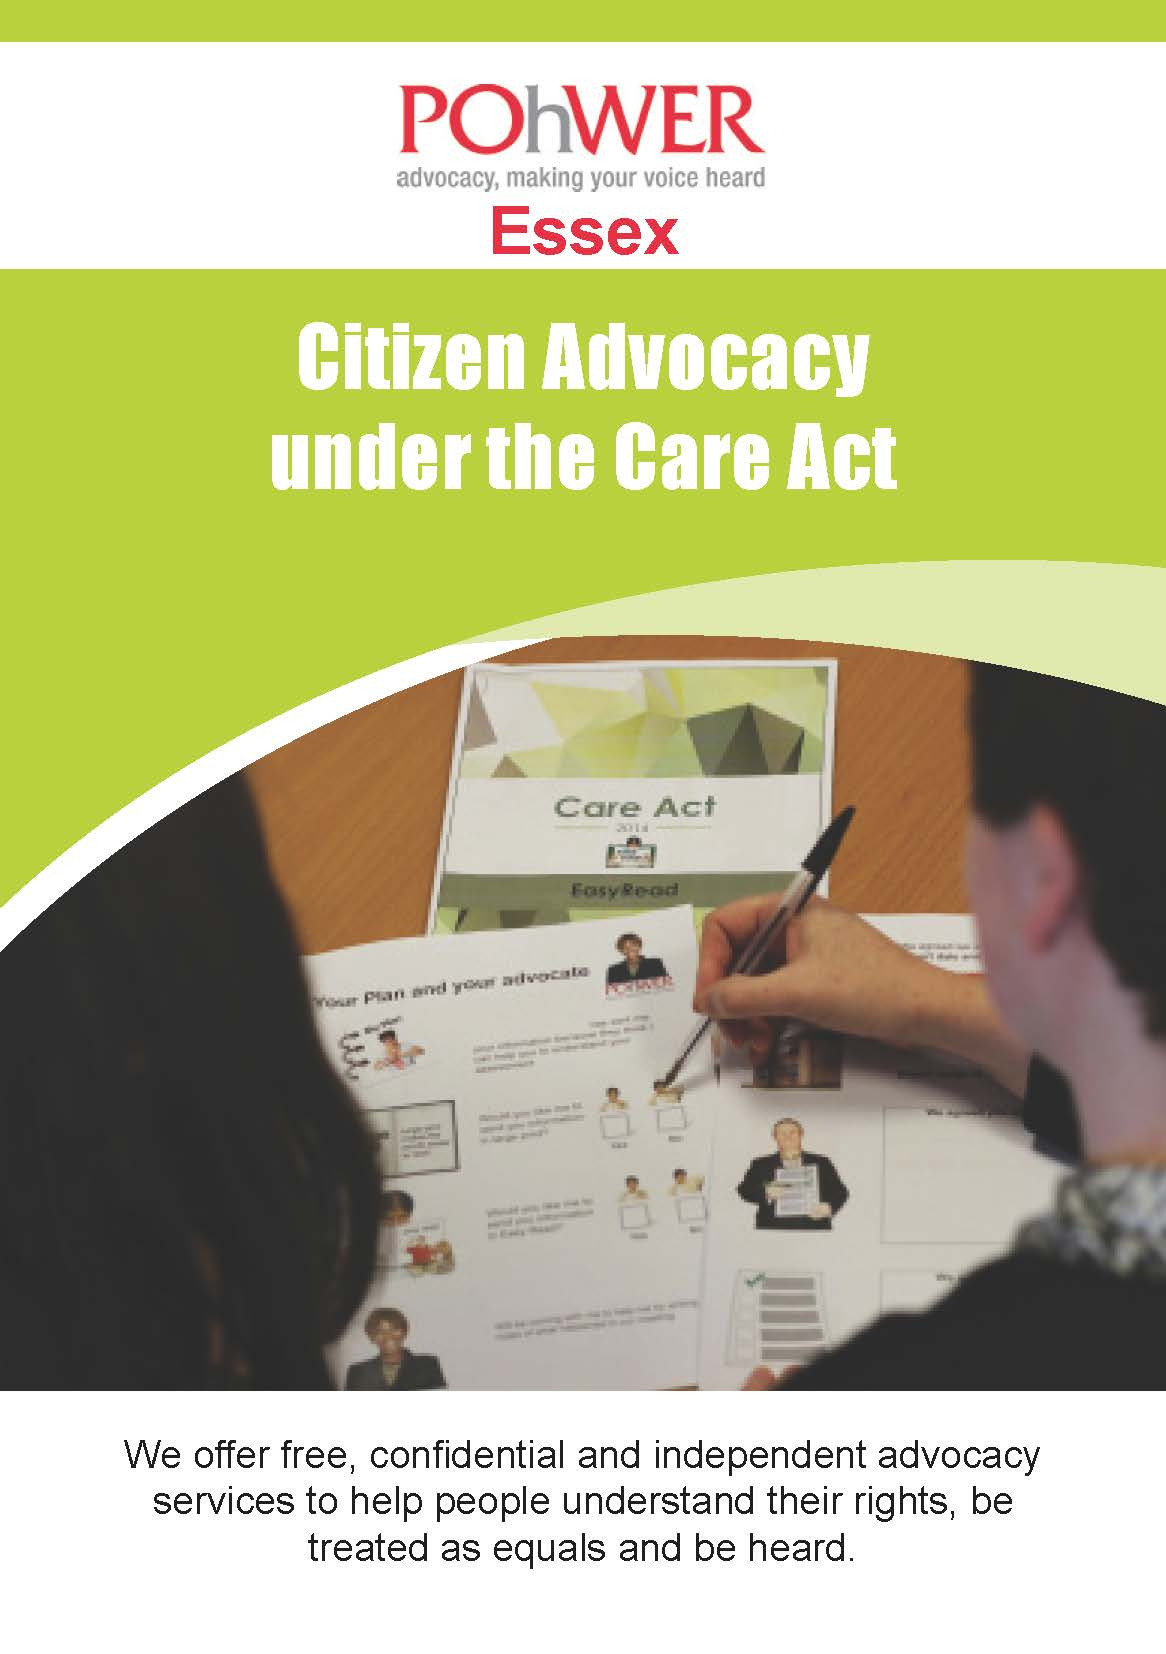 POhWER Essex Citizen Advocacy Leaflet